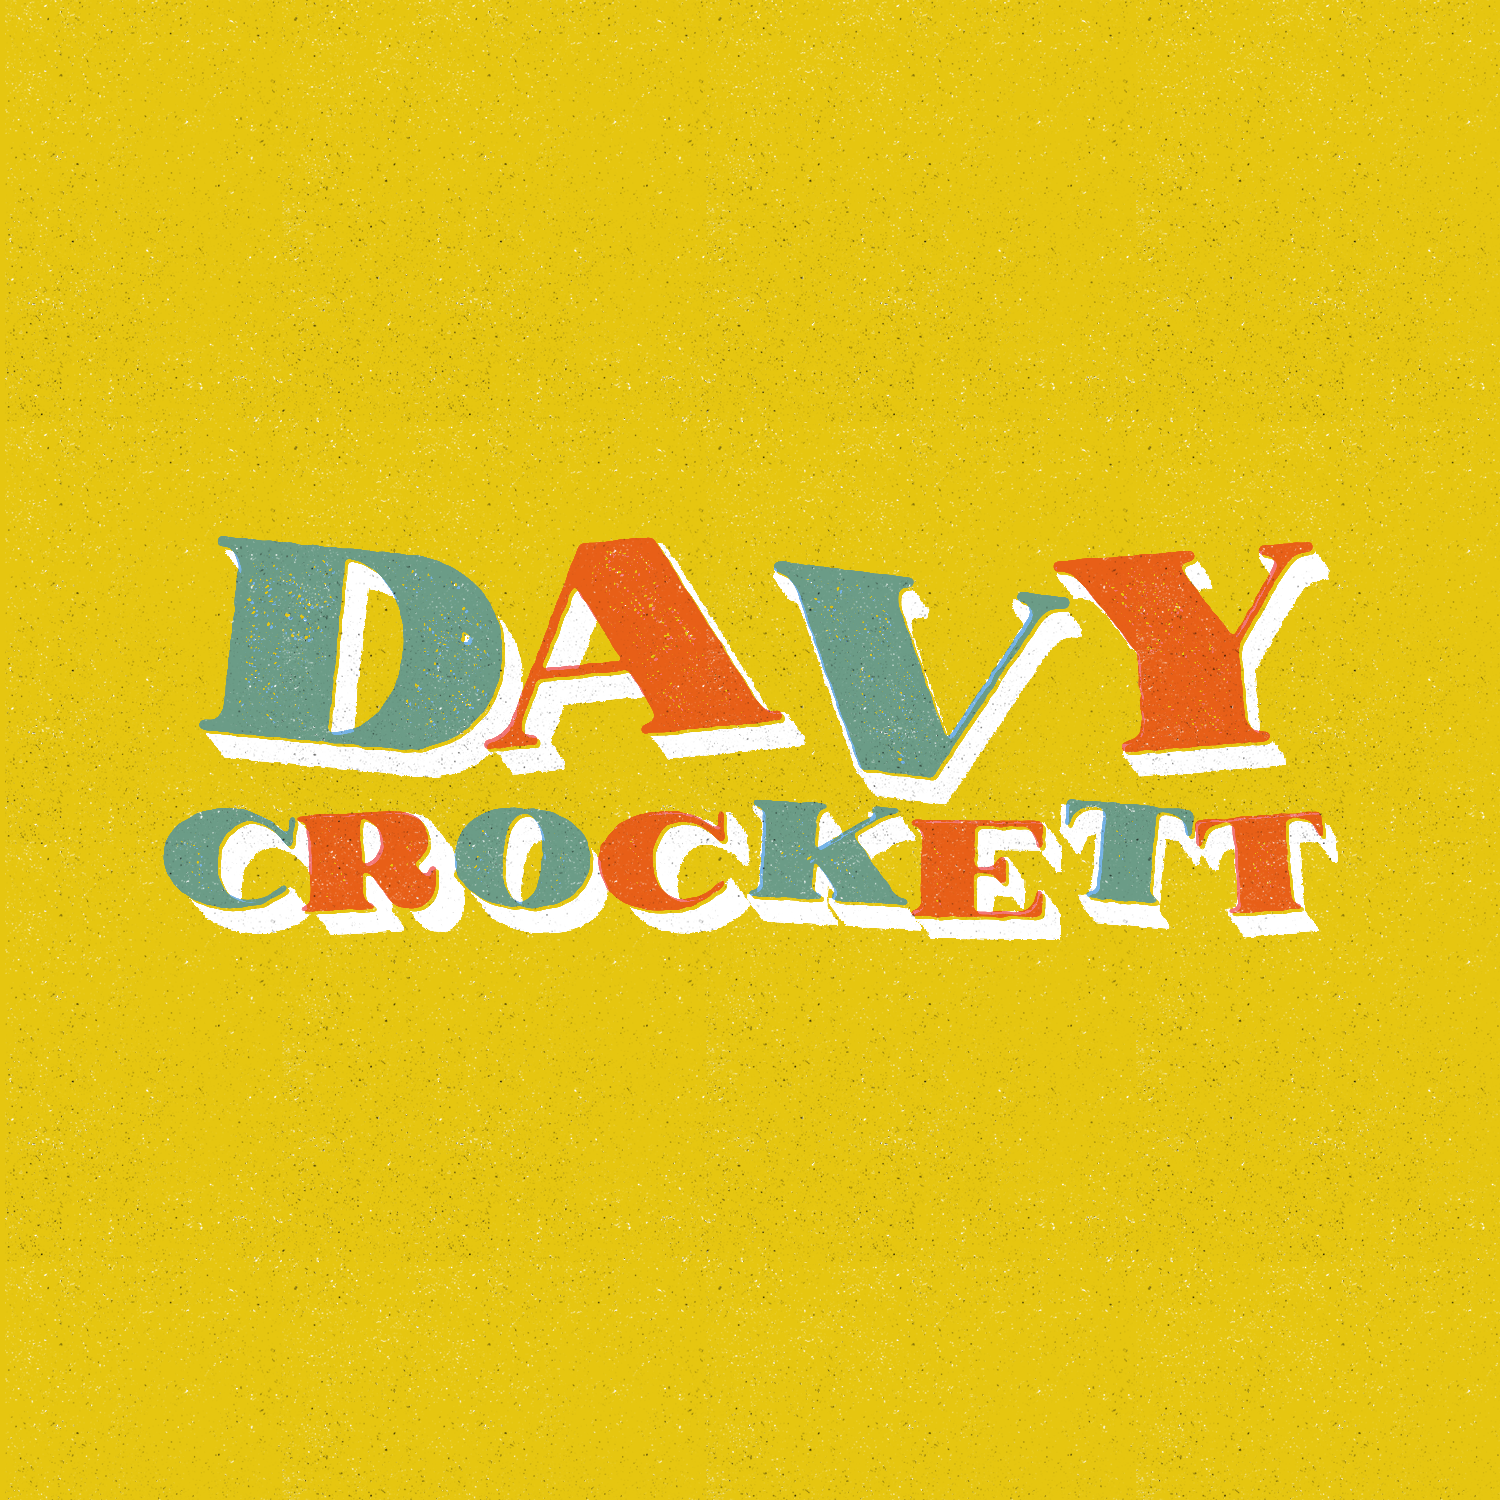 Davycrockett 1